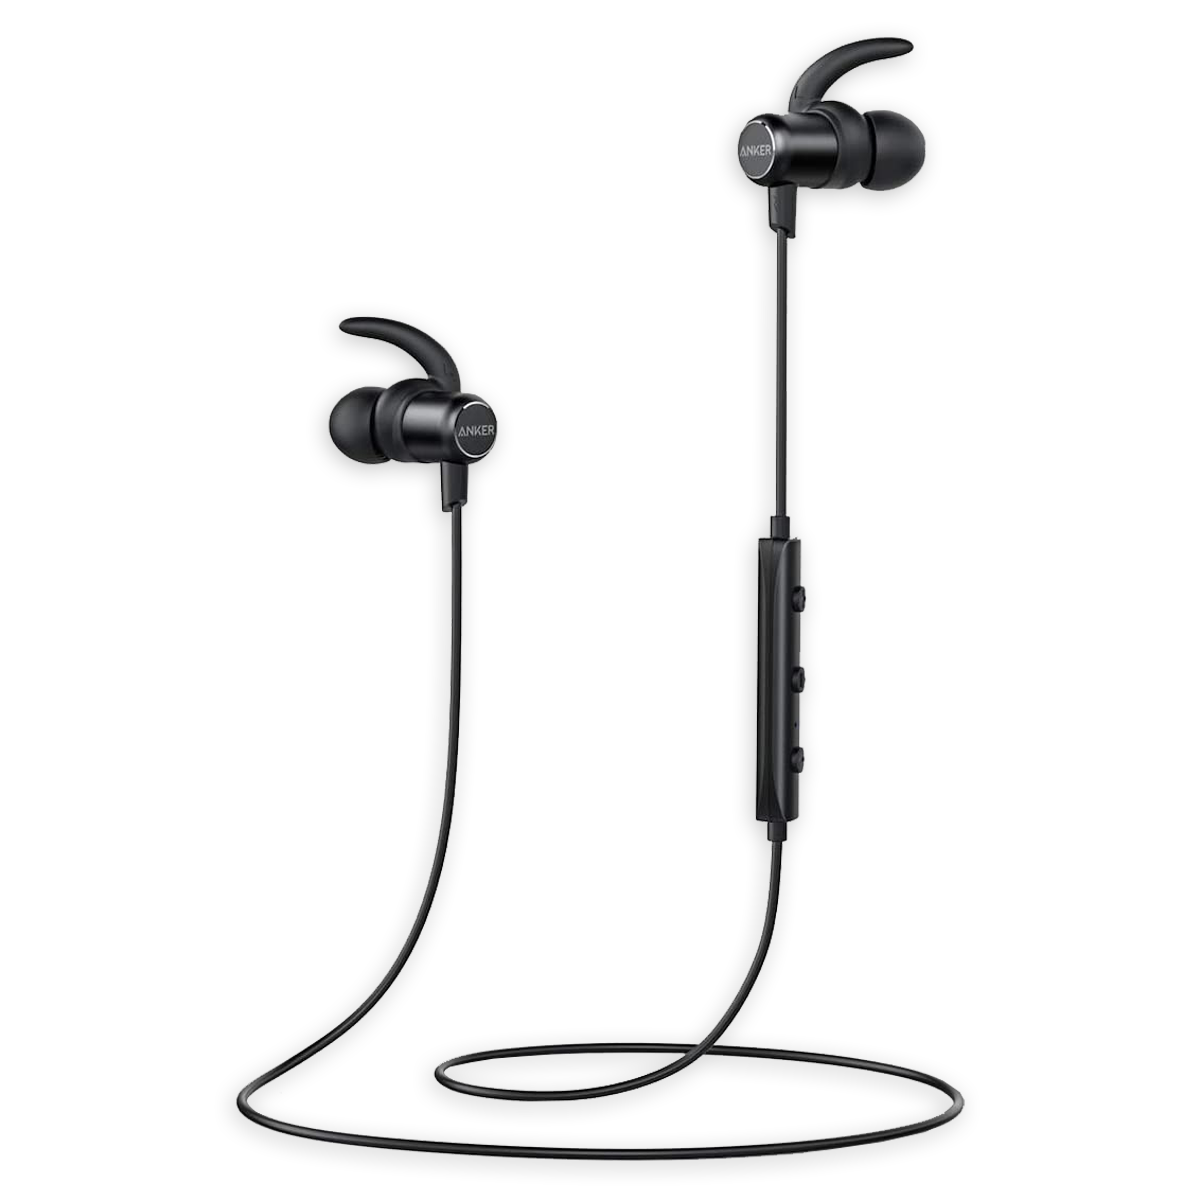 Anker SoundBuds Slim Wireless Bluetooth Headphones